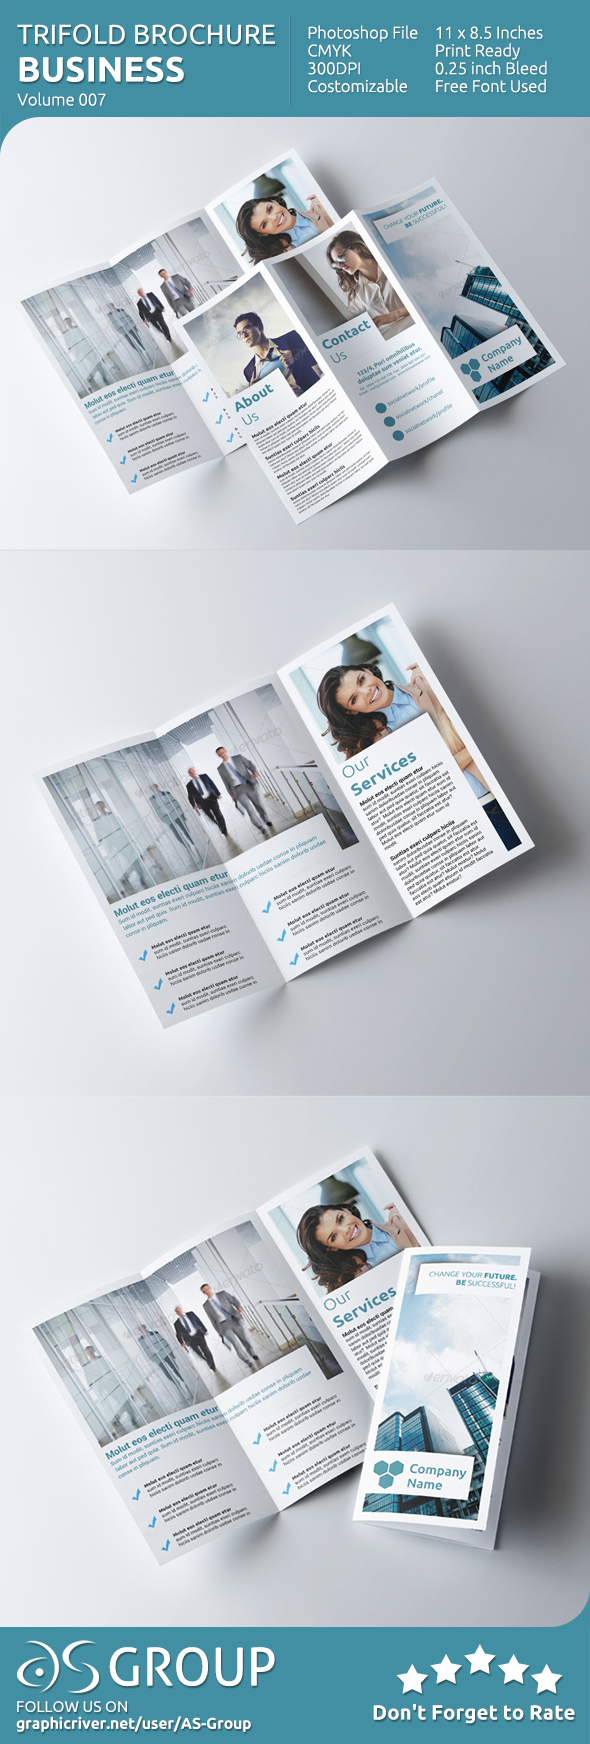 business_tri-fold-brochure-v007-preview